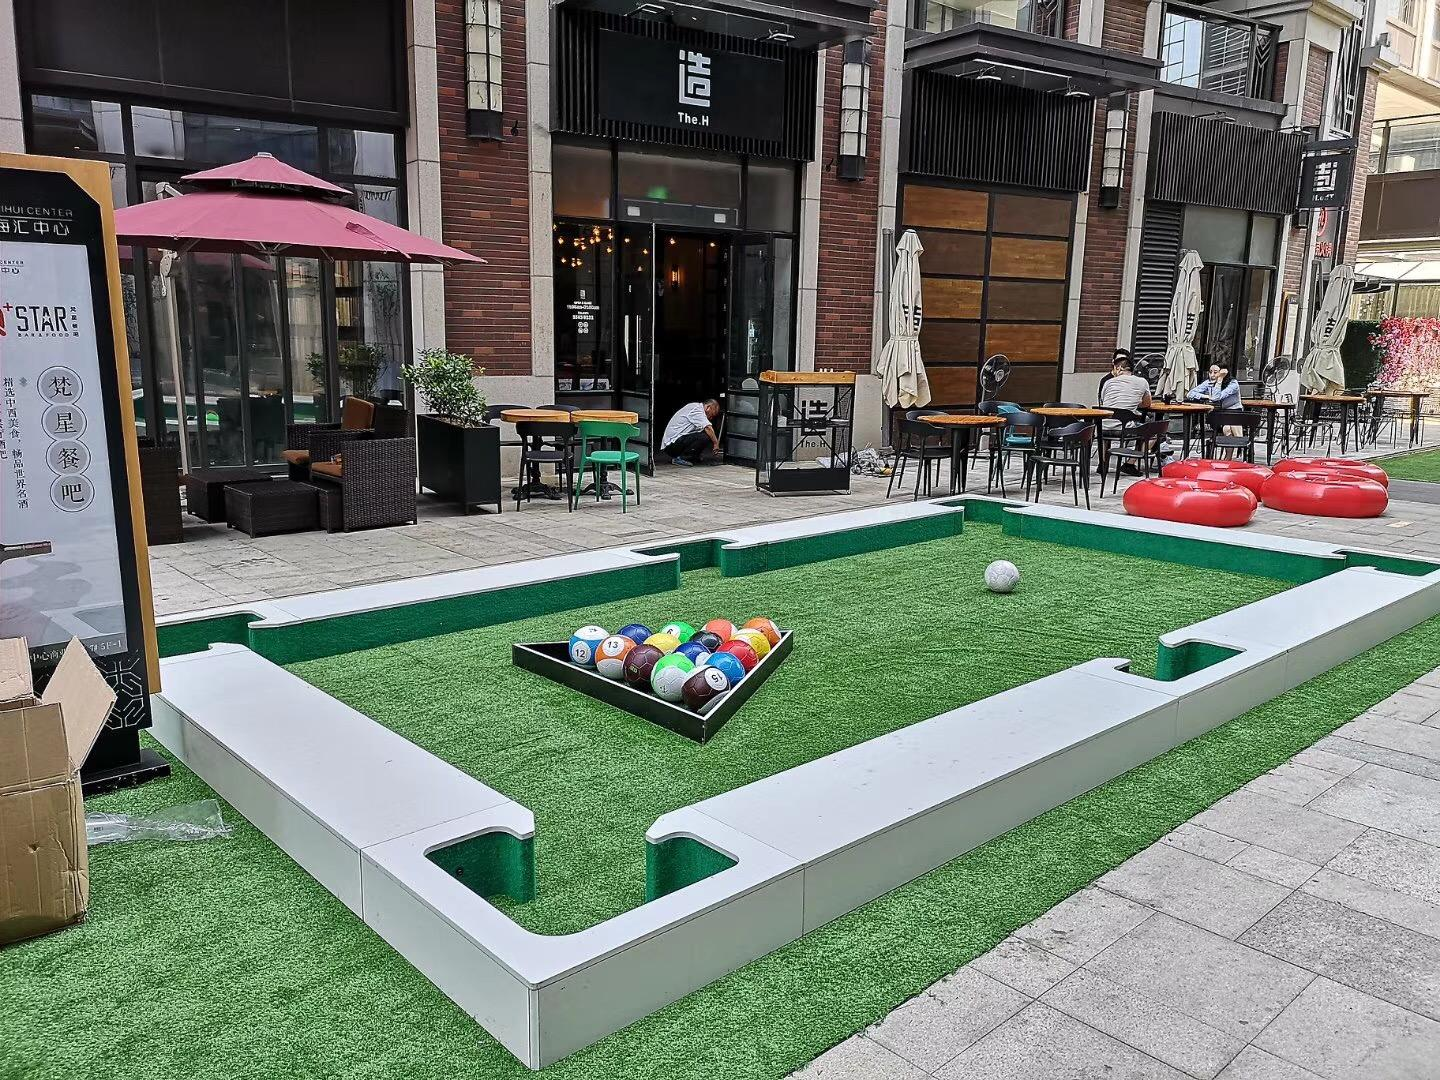 new snookball game poolball game made in China 1